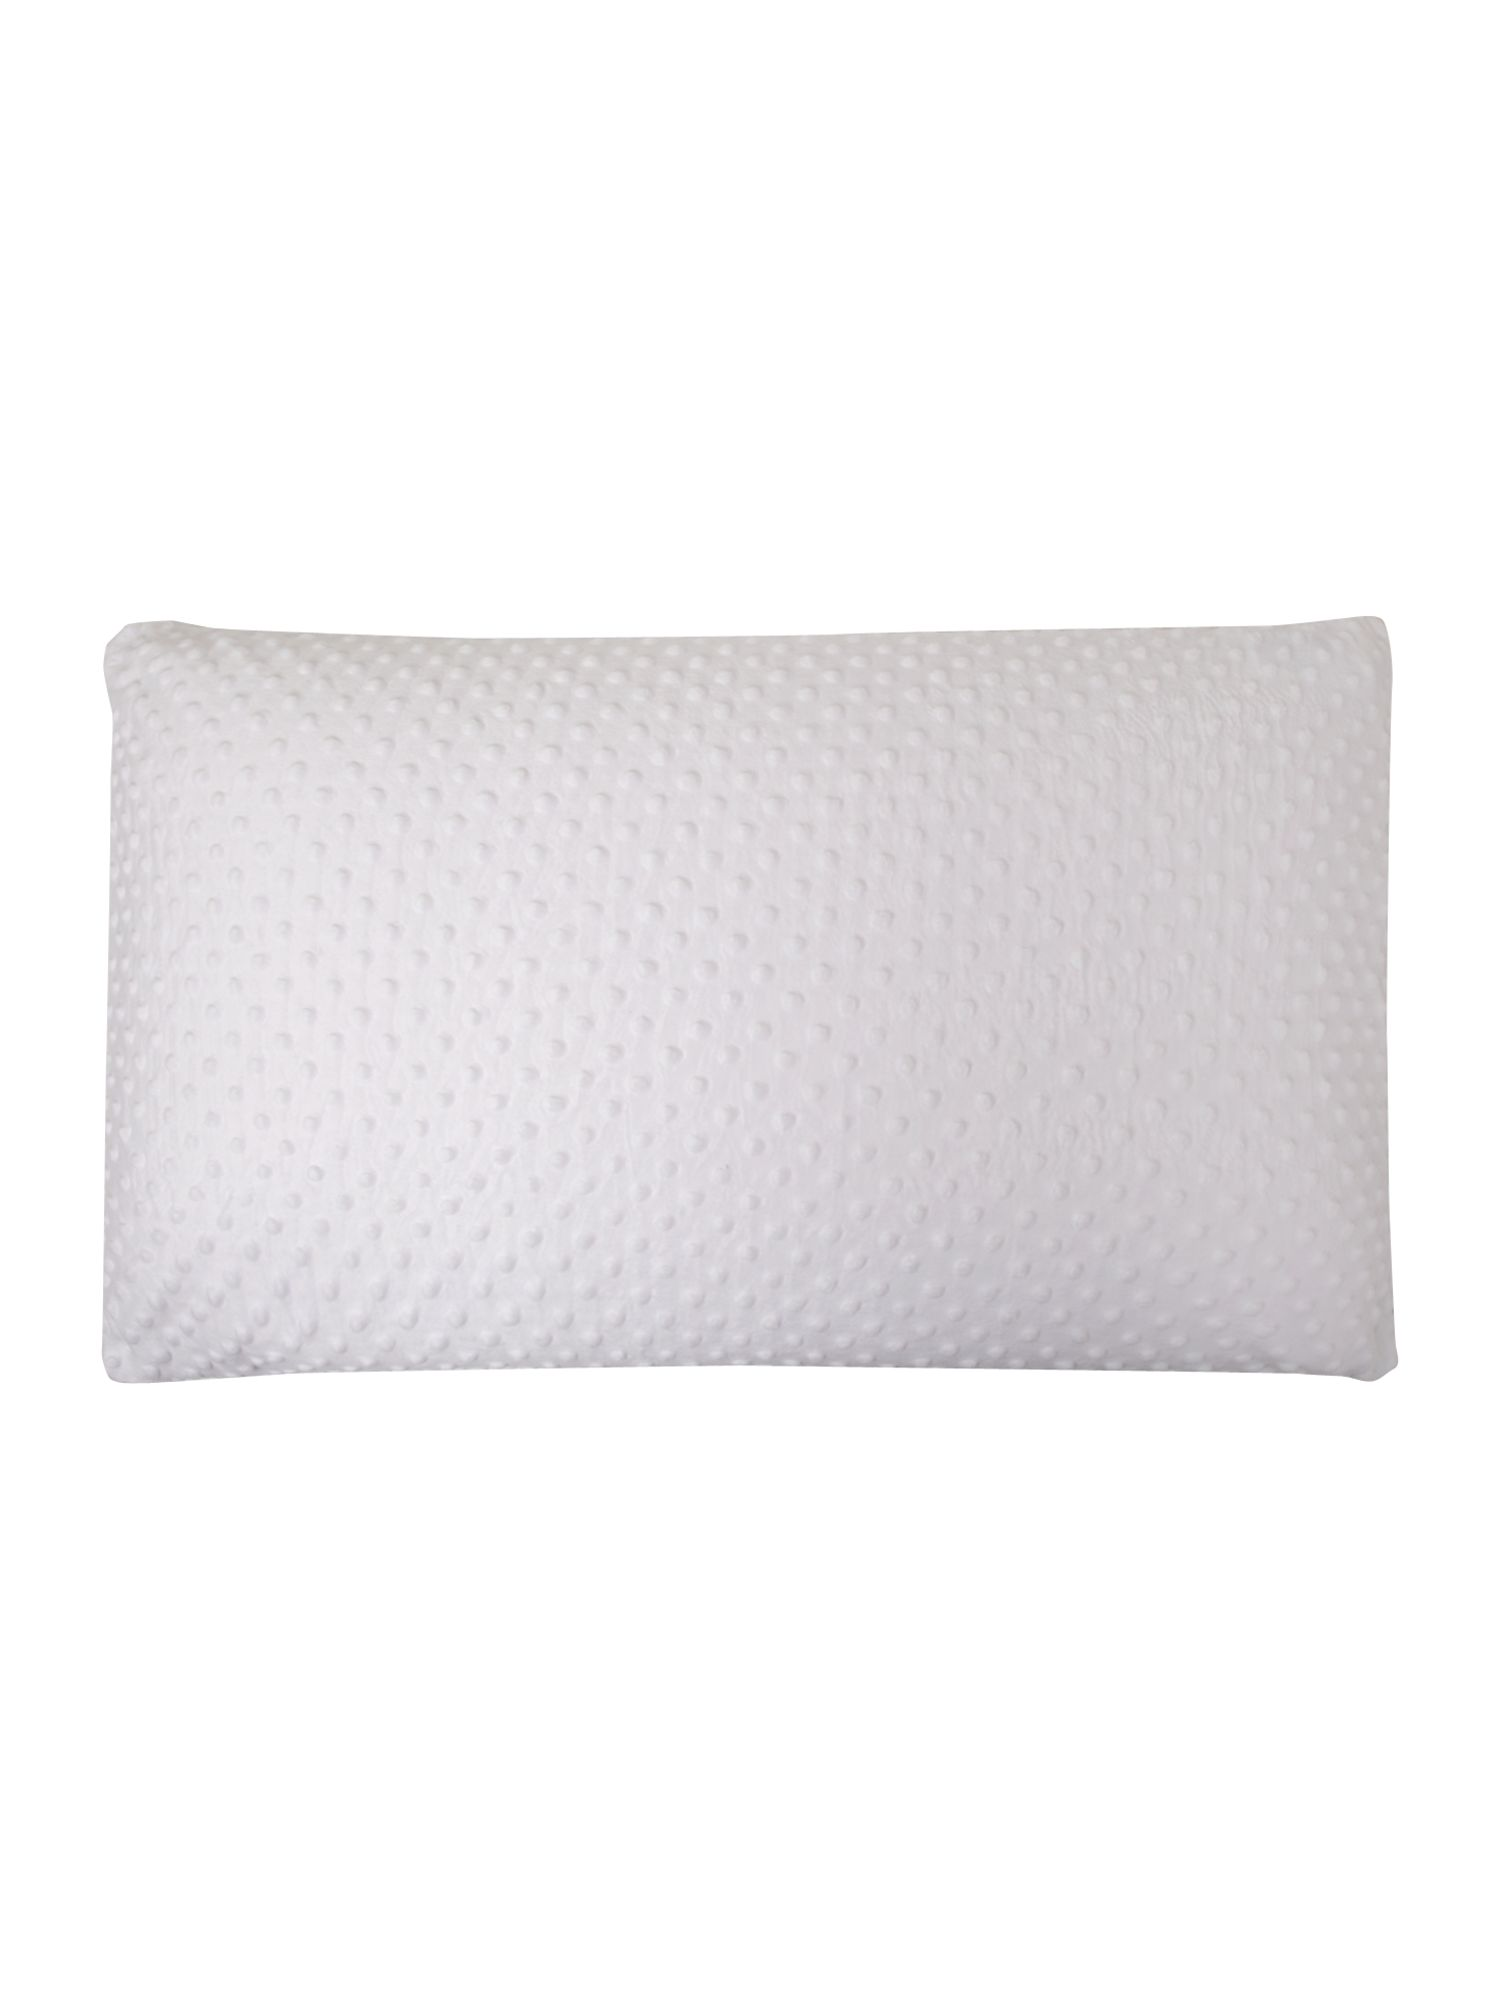 Latex Low Profile Pillow